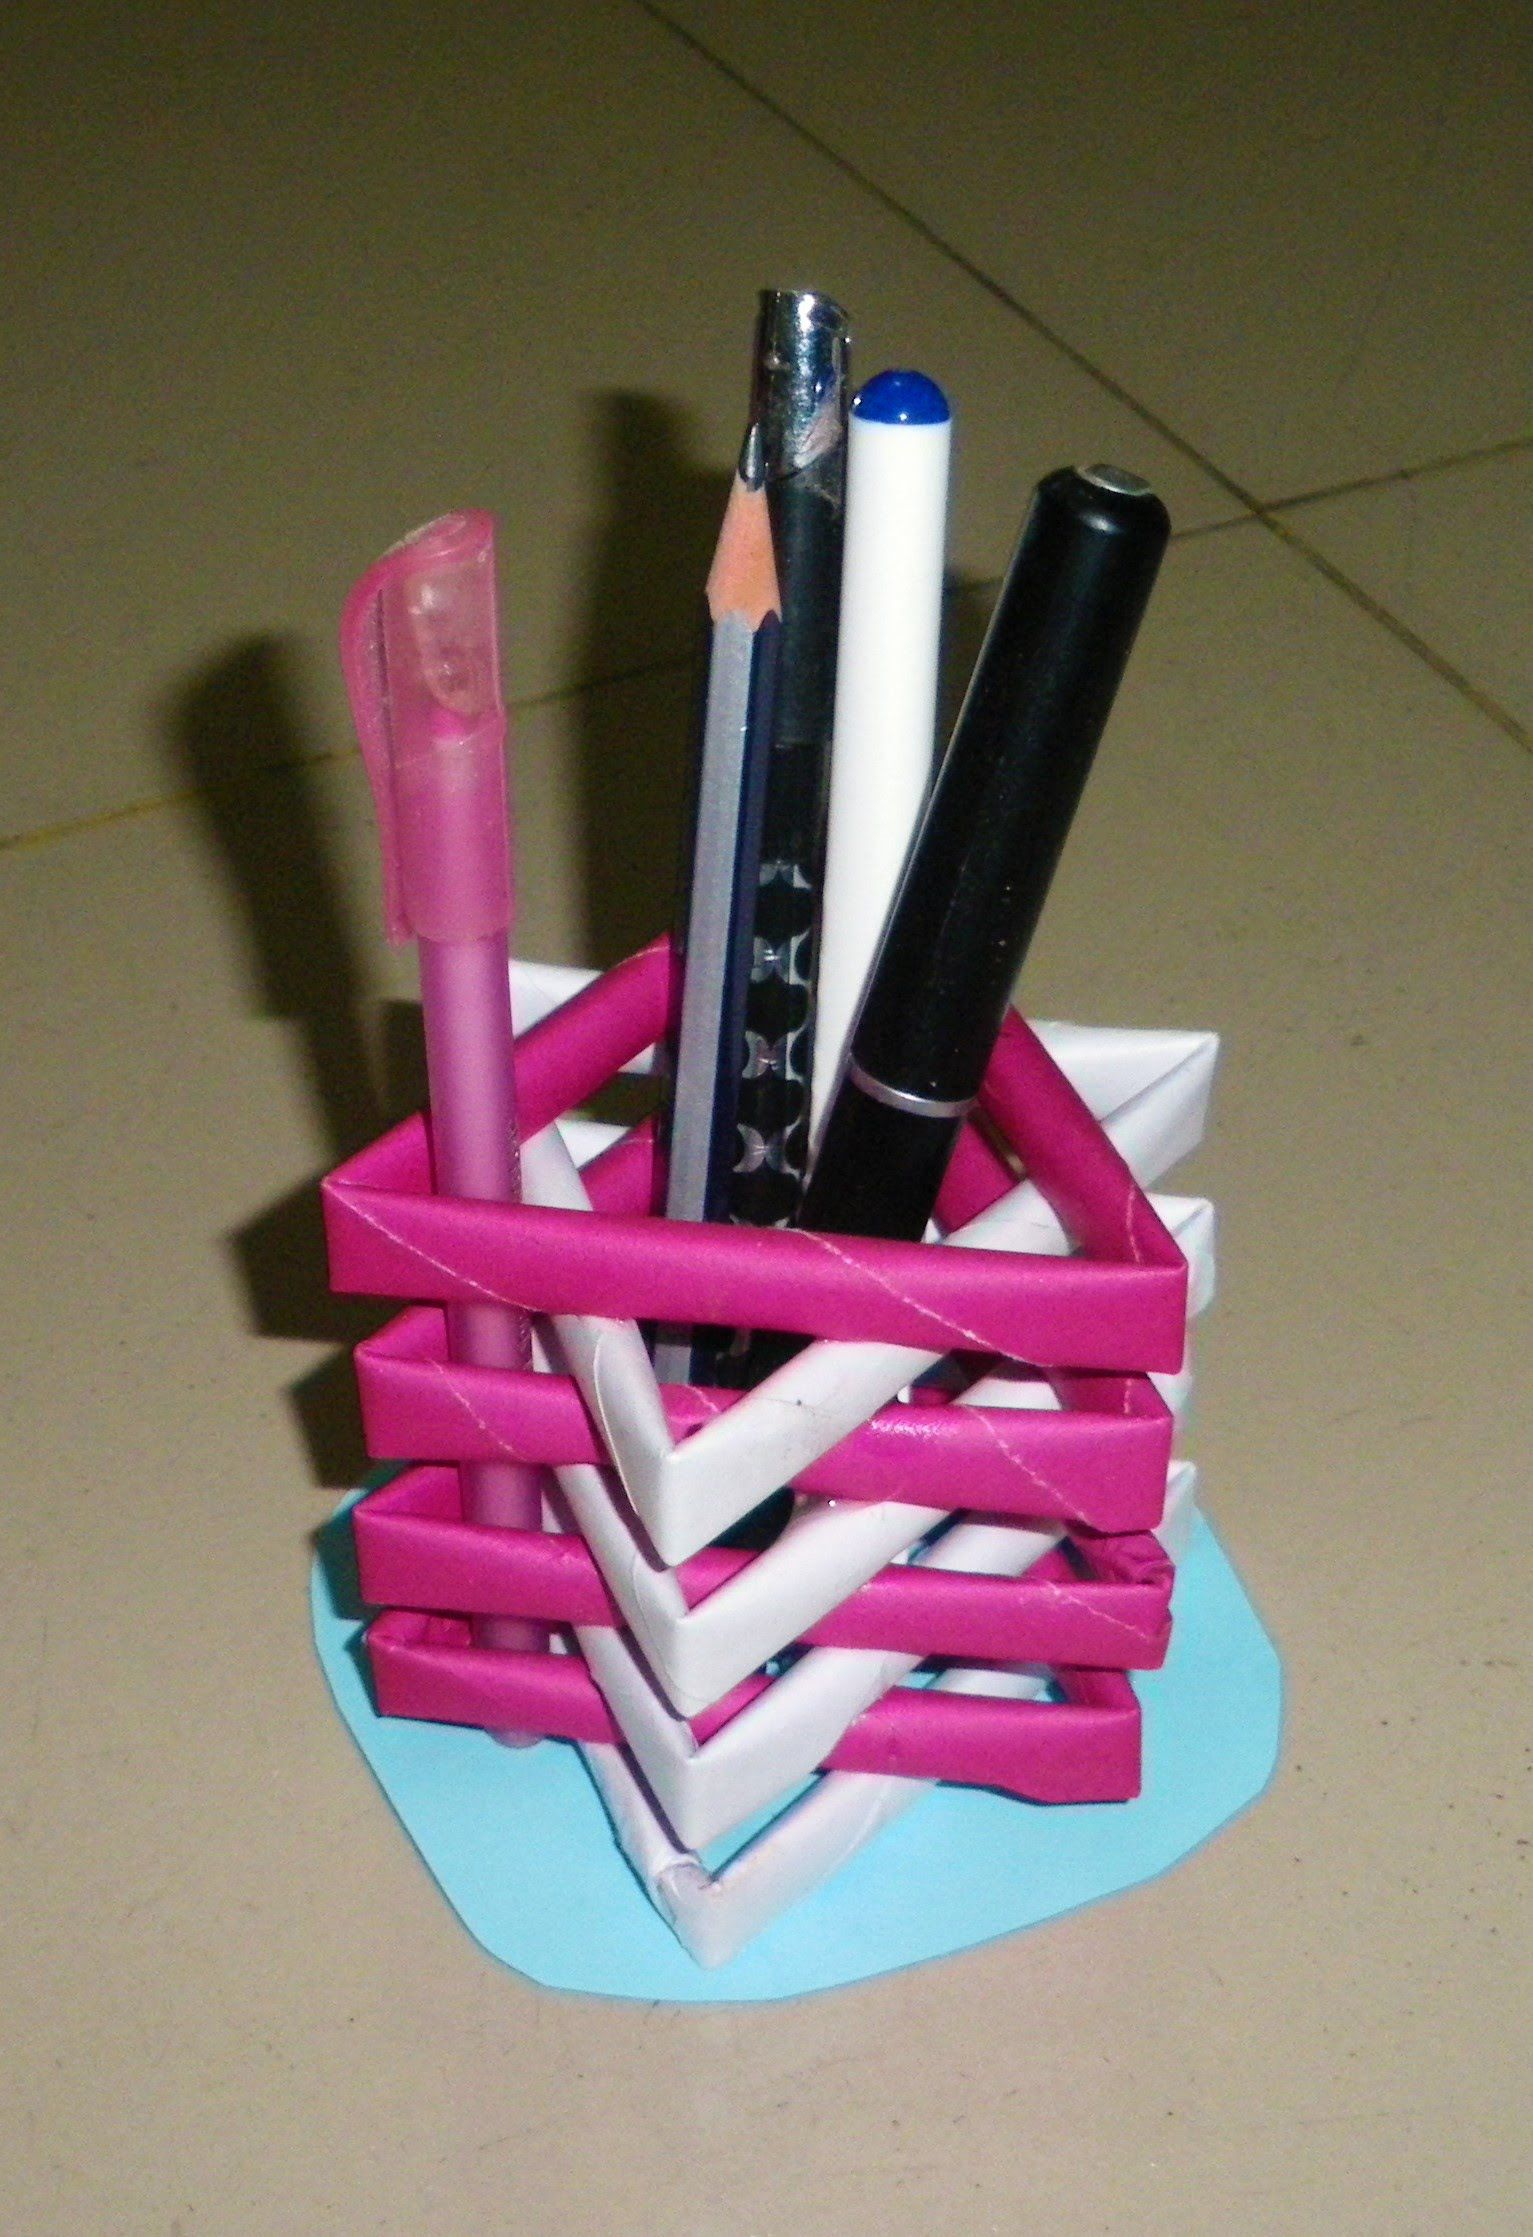 How to make a pen stand from waste material diy paper for Waste material craft on paper